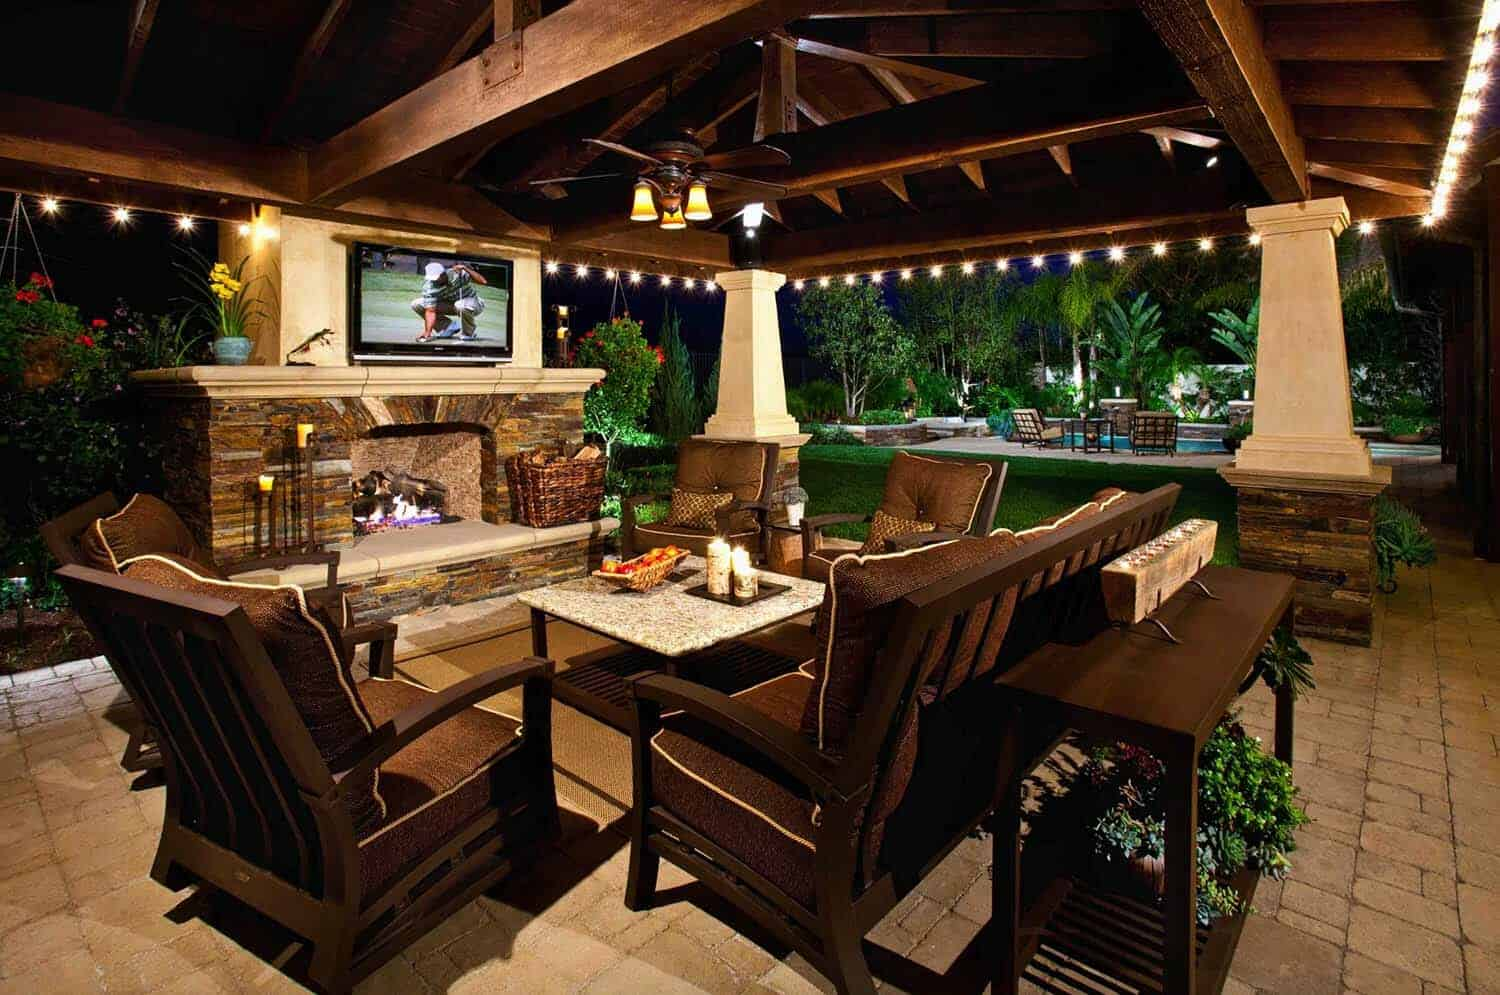 25+ Fabulous outdoor patio ideas to get ready for spring ... on Houzz Outdoor Living Spaces id=36958